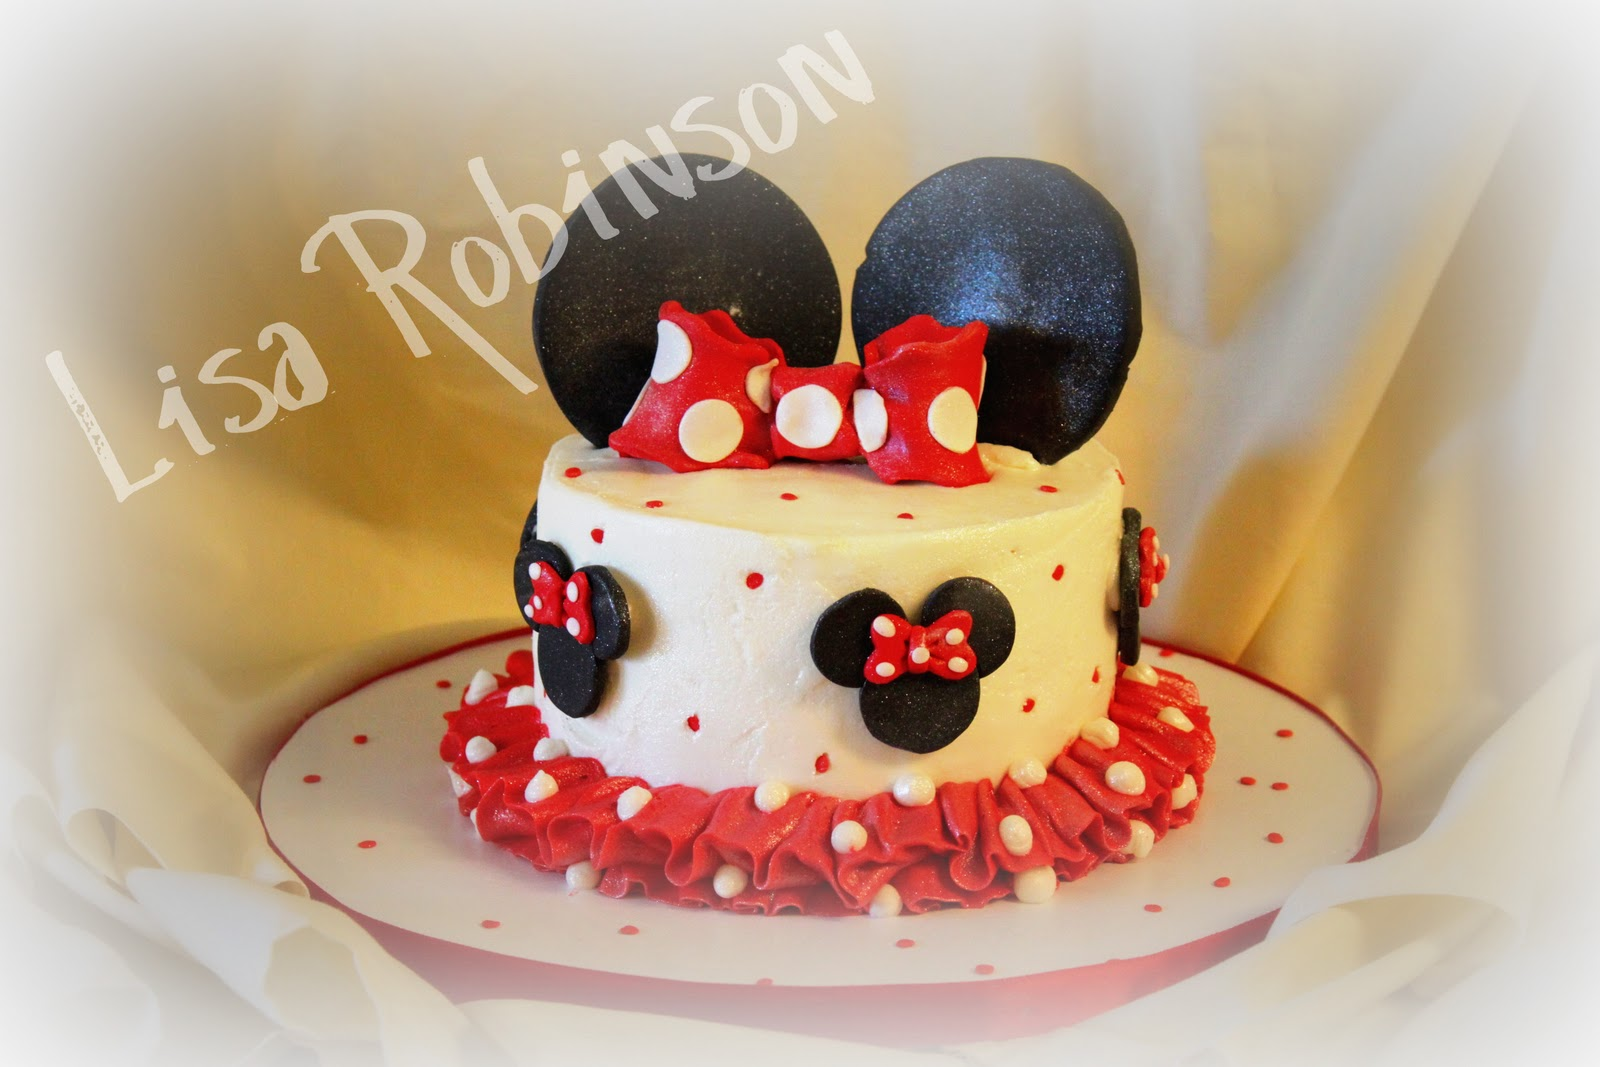 Birthday Cake Ideas For 65 Year Old Man For Boy Birthday Cakes For